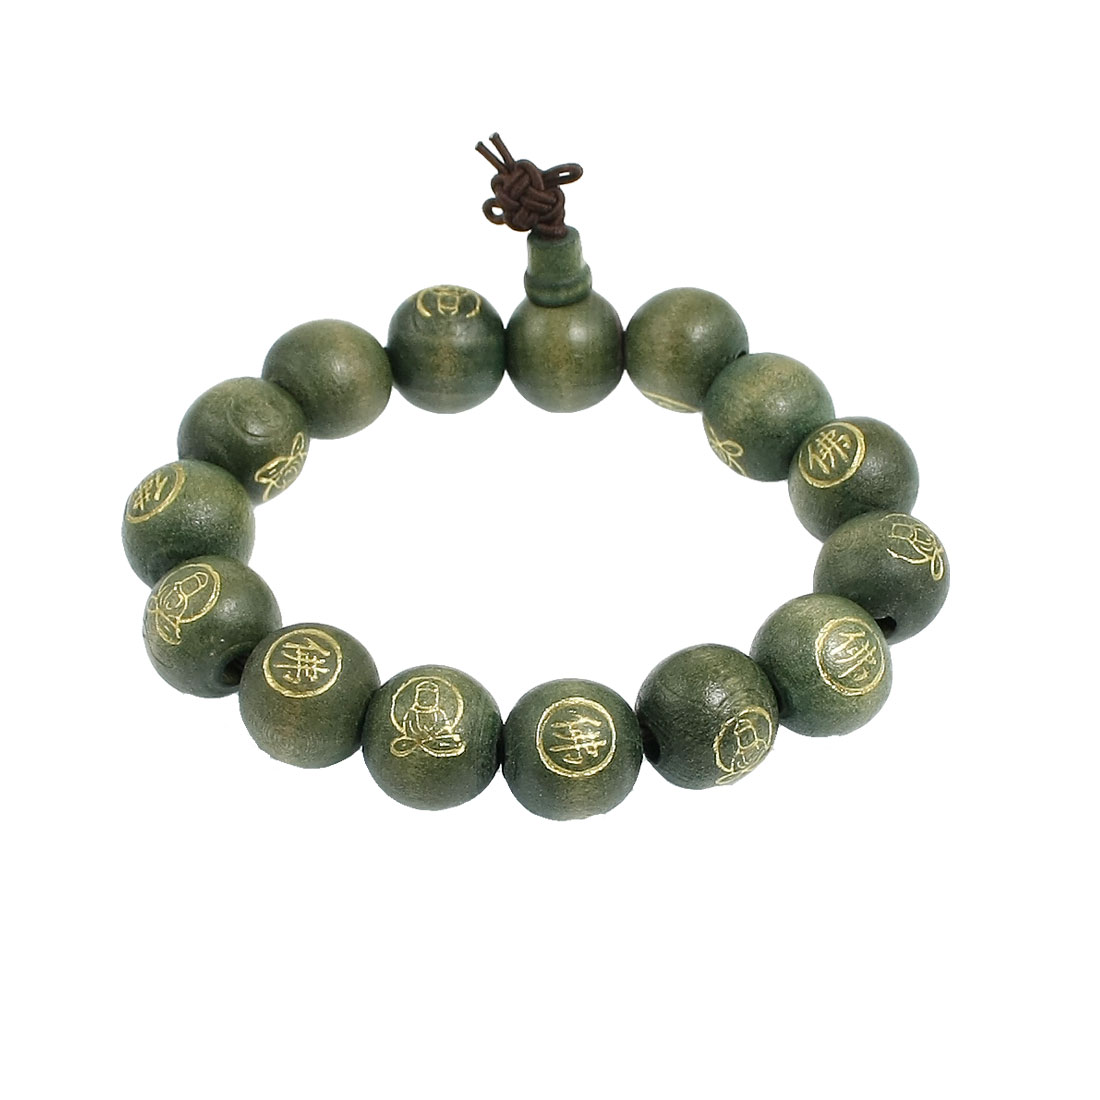 "Stretchy Green Buddha Beads Chinese Character Bangle Bracelet 9.8"" Girth"